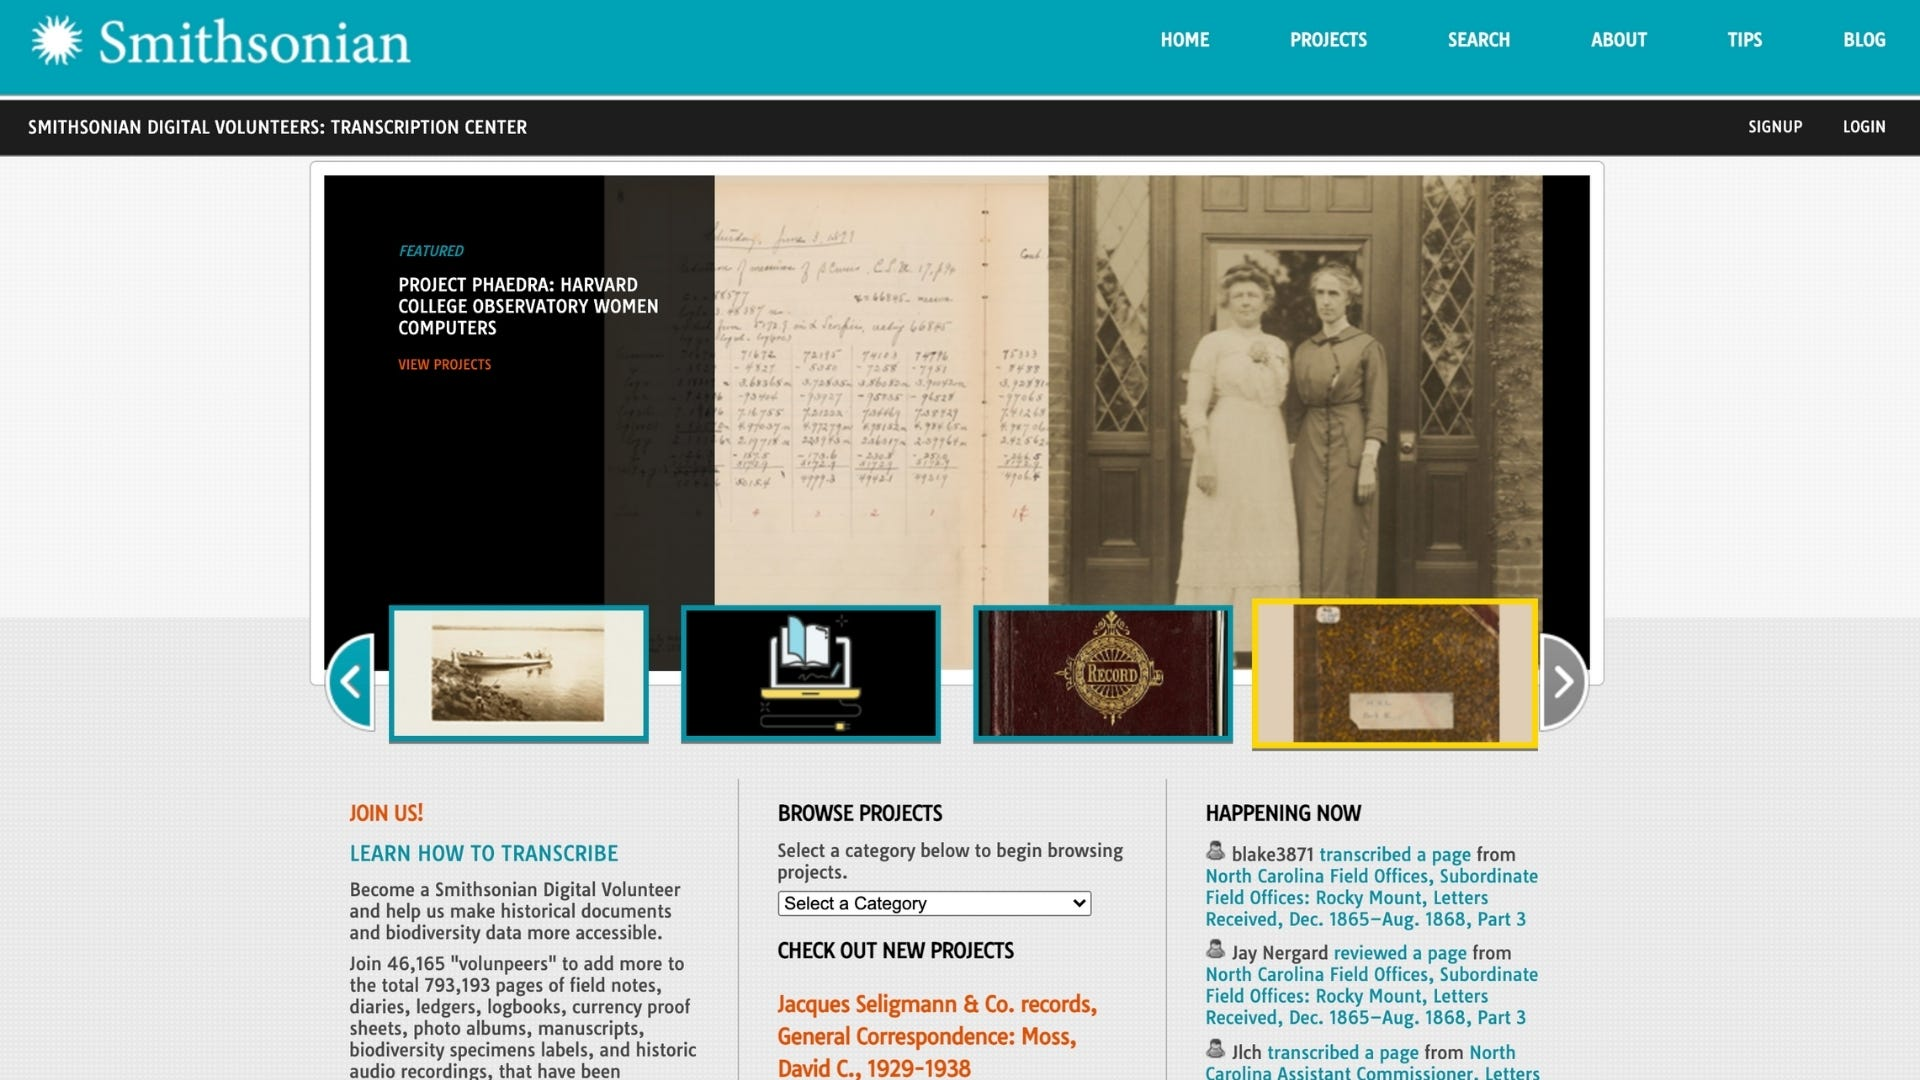 Homepage of the Smithsonian Transcription Center with an image of an old photograph and a letter.